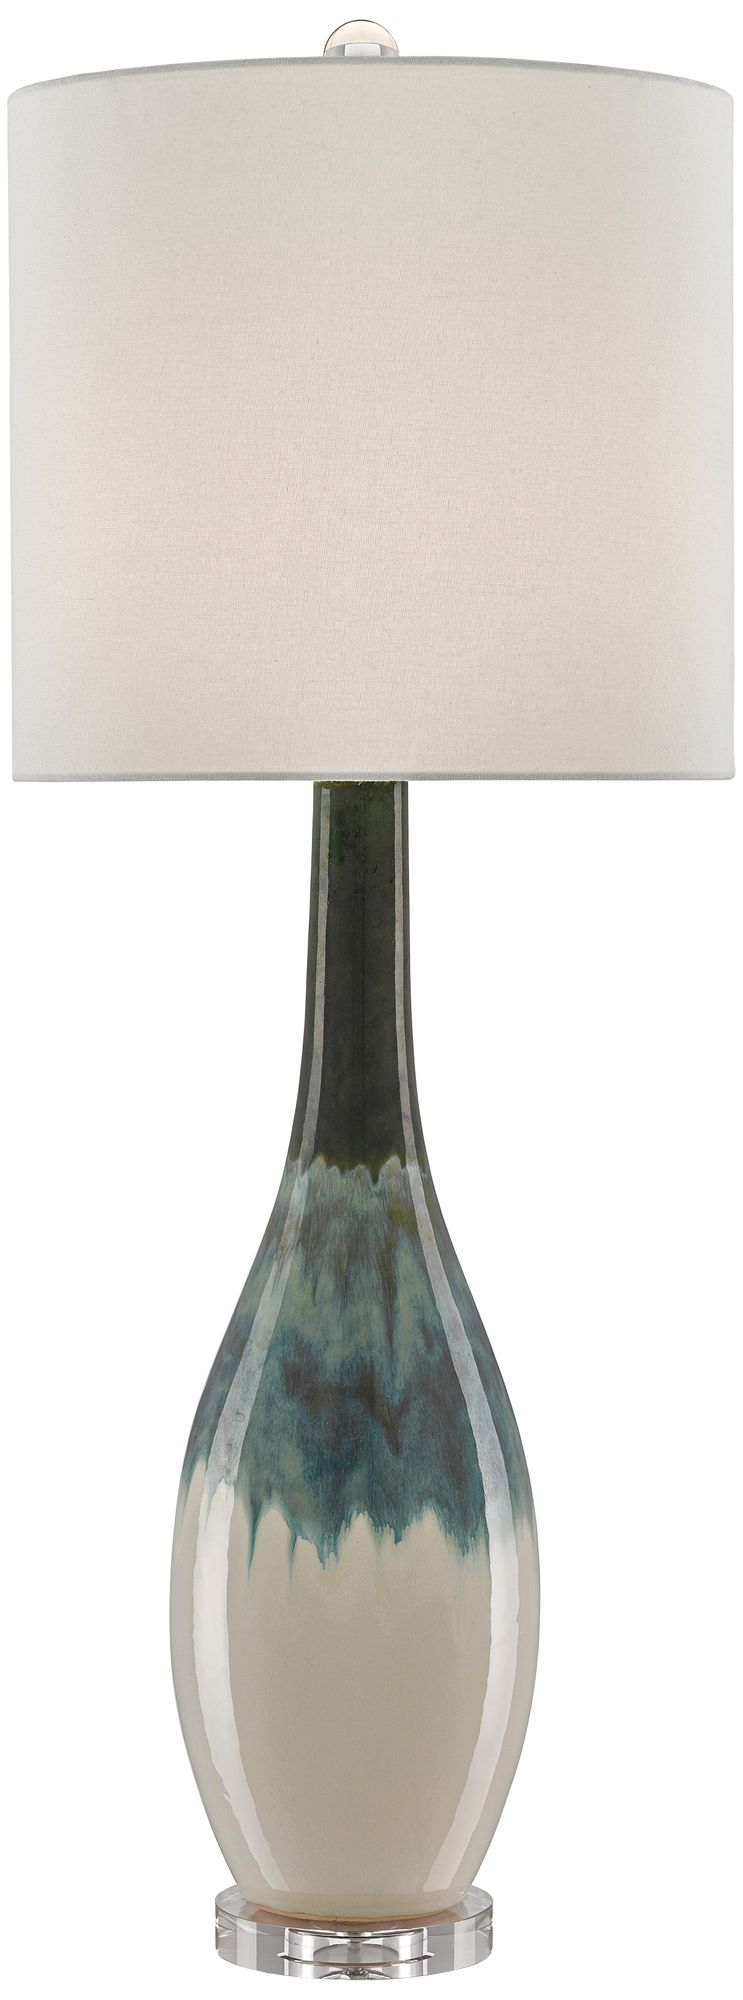 Rothko Green And Turquoise Ceramic Table Lamp